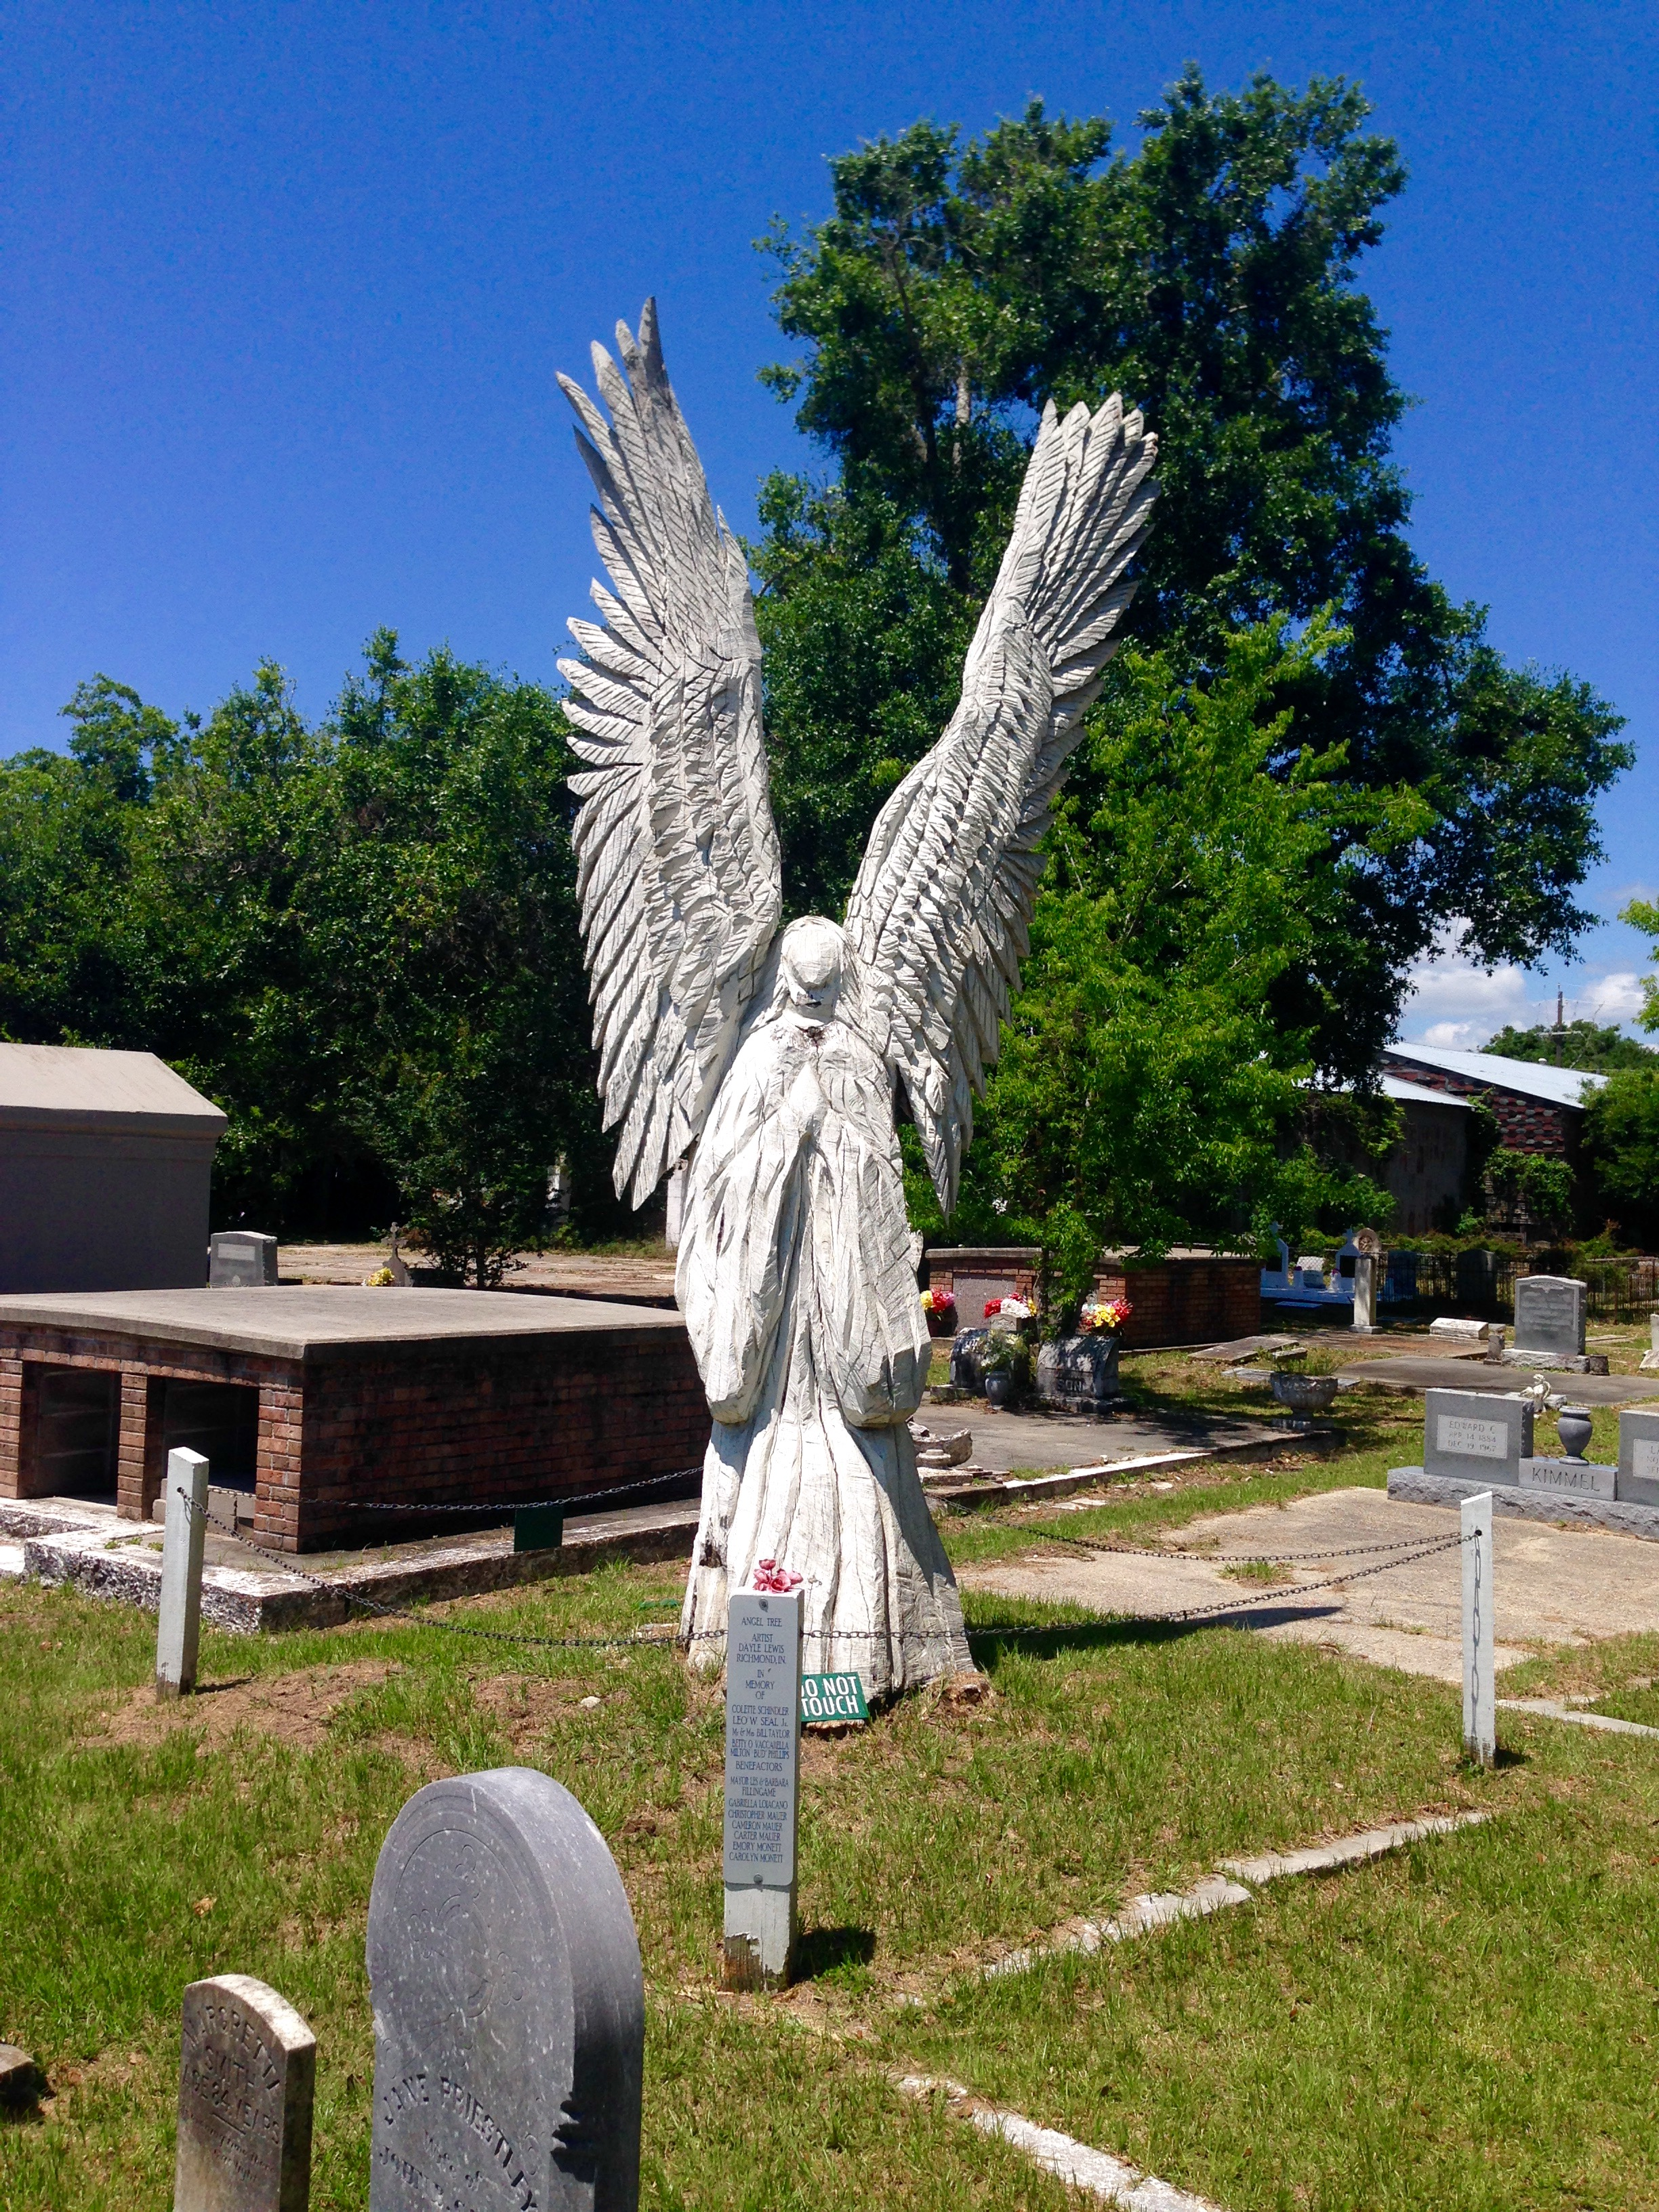 There are four angel trees in Bay St. Louis, all carved by chainsaw artist Dale Lewis. (Stephanie Oswald/WGNO)